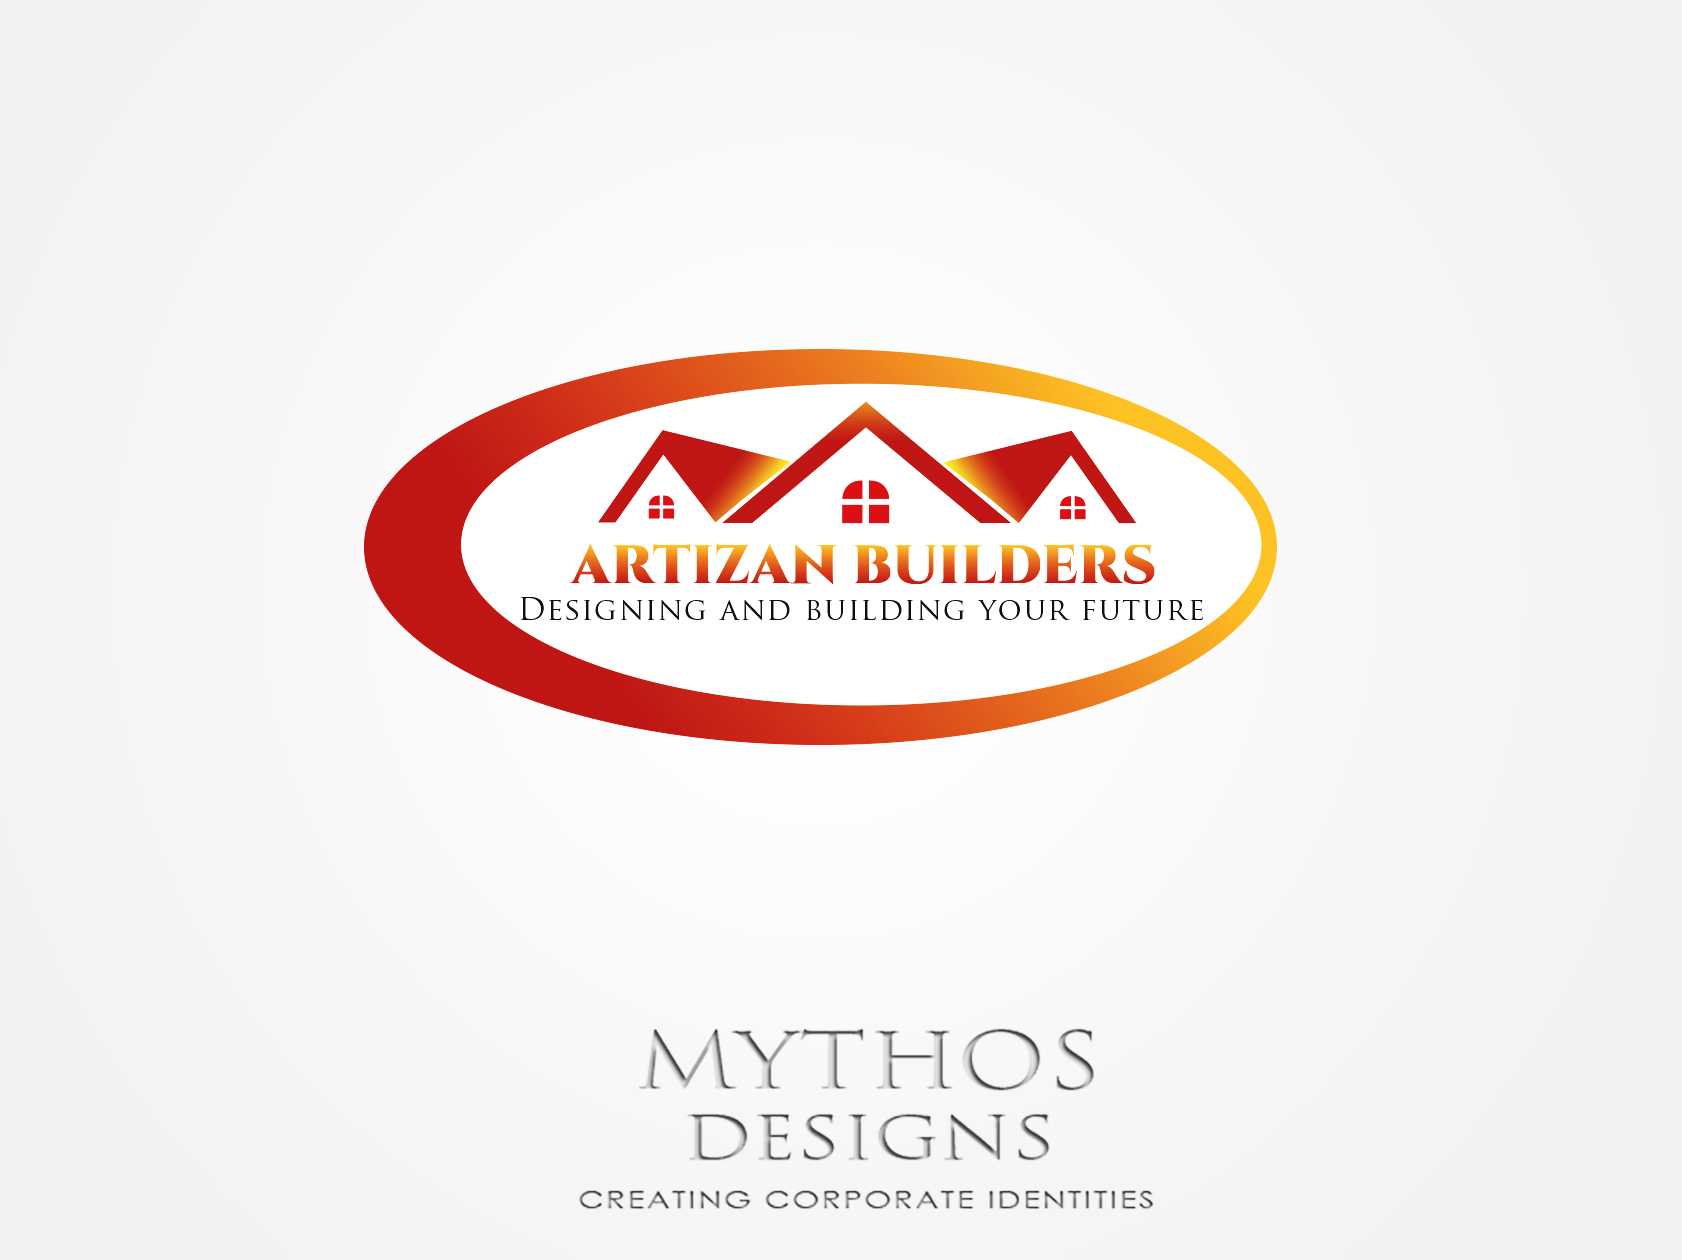 Logo Design by Mythos Designs - Entry No. 67 in the Logo Design Contest Captivating Logo Design for Artisan Builders.